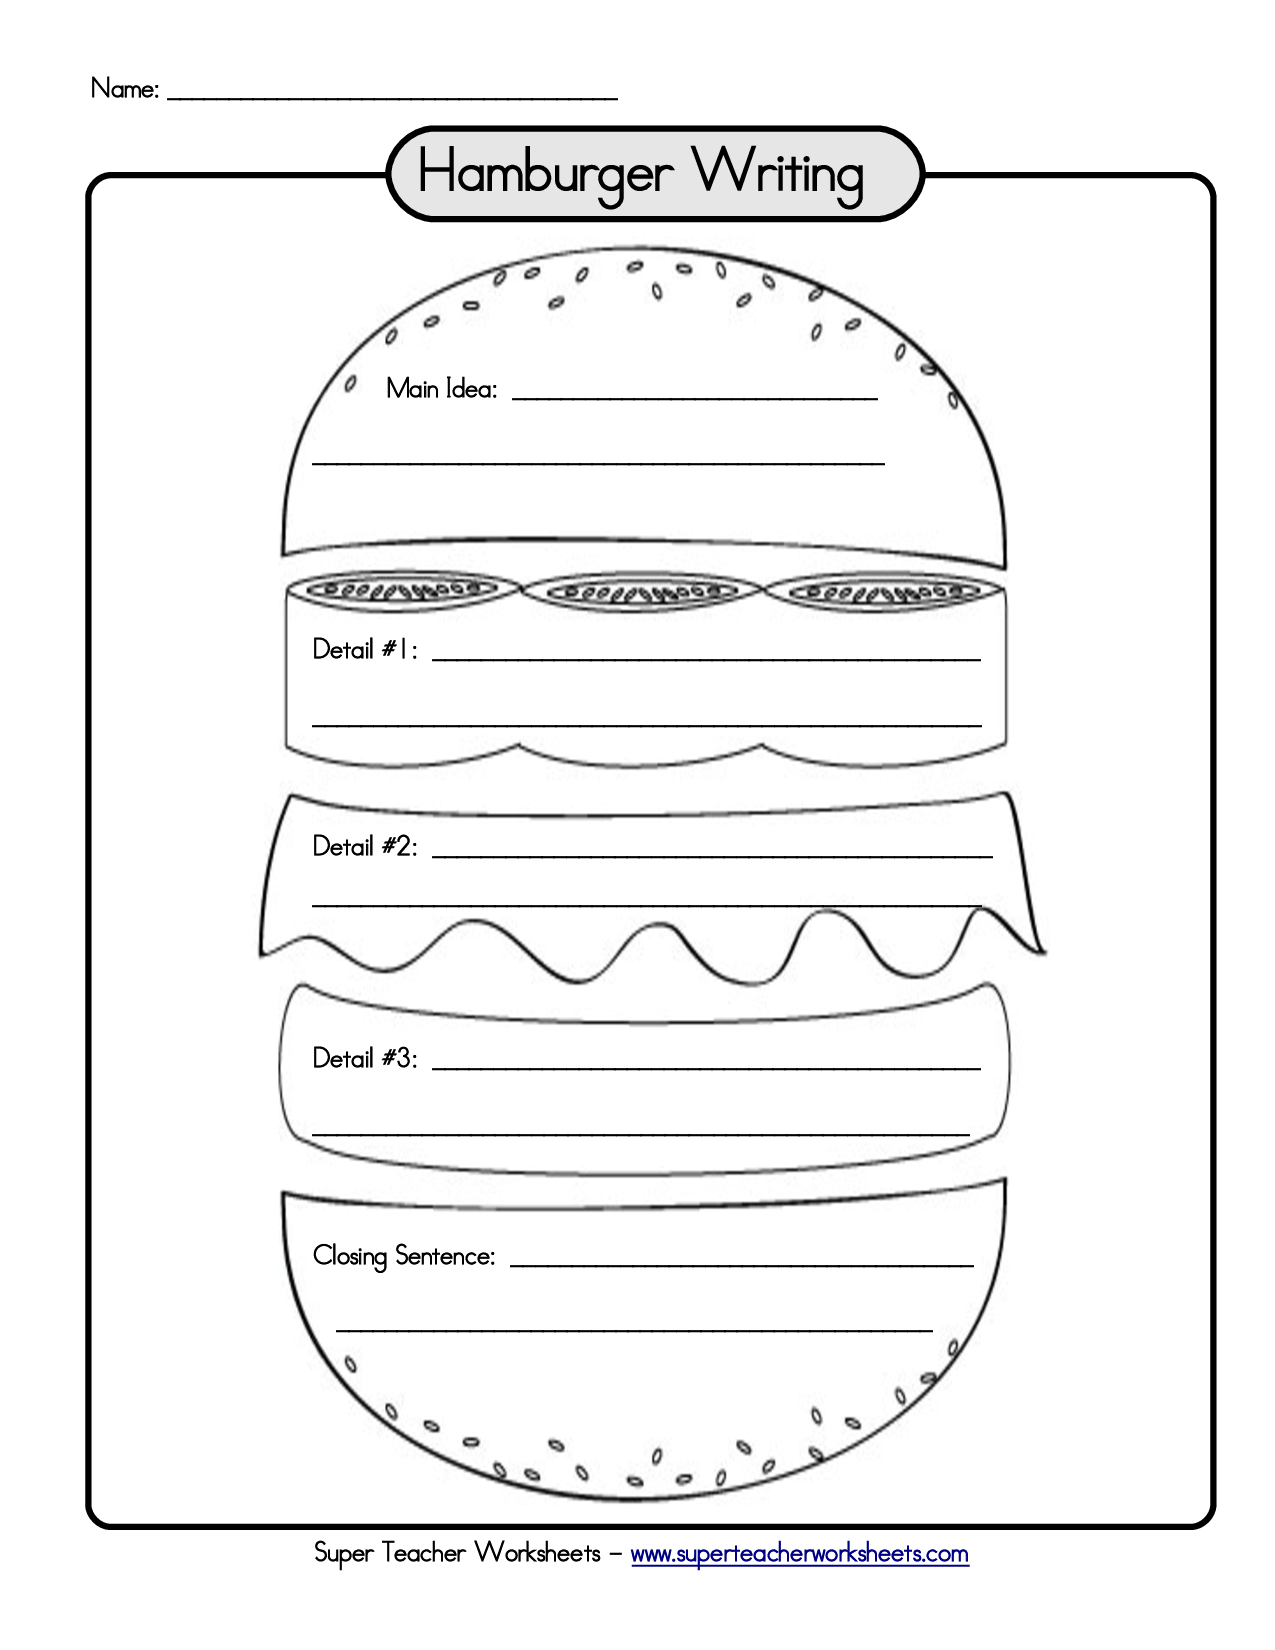 Hamburger graphic organizer writing paragraph links to a bunch of hamburger graphic organizer writing paragraph links to a bunch of different templates which are great pronofoot35fo Choice Image